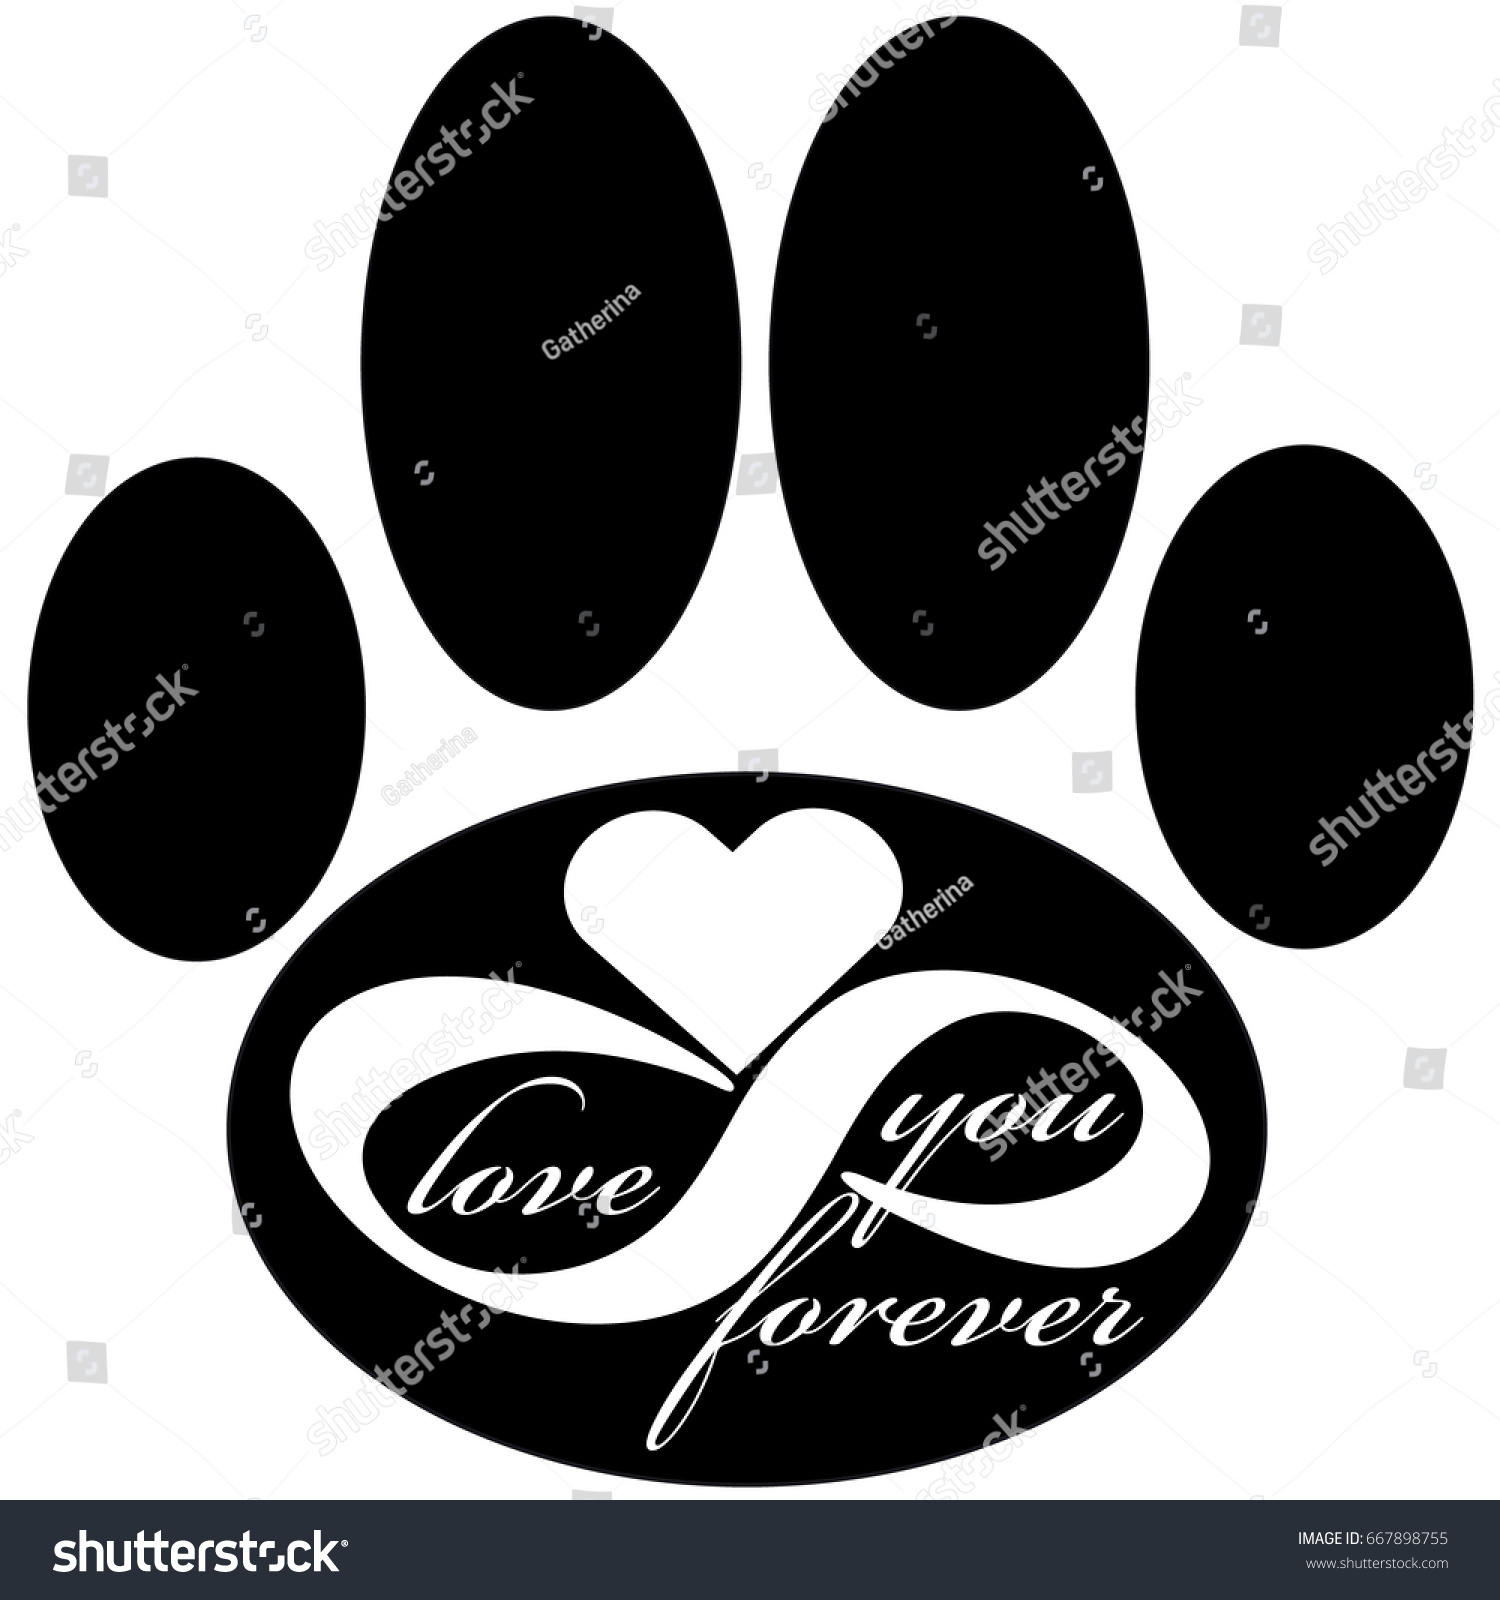 Forever love icon dog paw isolated stock vector 667898755 forever love icon with dog paw isolated on white background vector illustration biocorpaavc